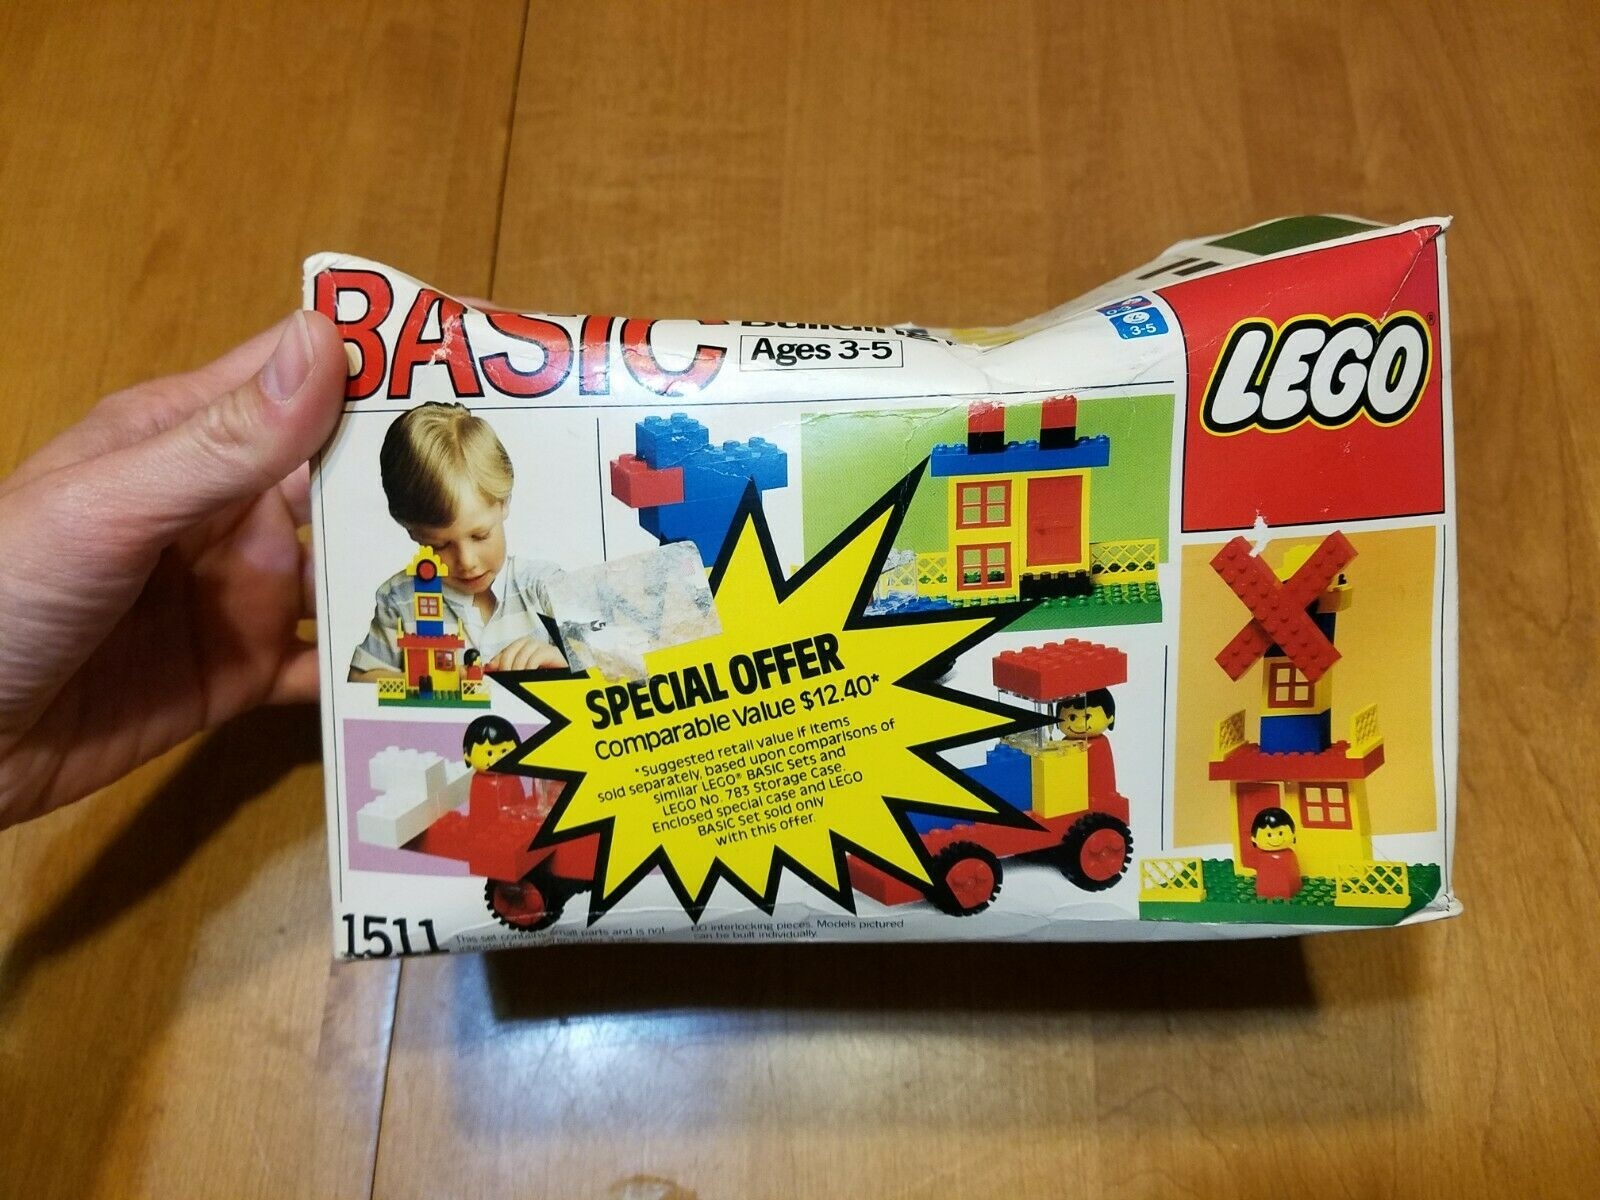 Lego 1511 Basic Building Toy Ages 3-5 60 interlocking pieces 1986 RARE NEW READ